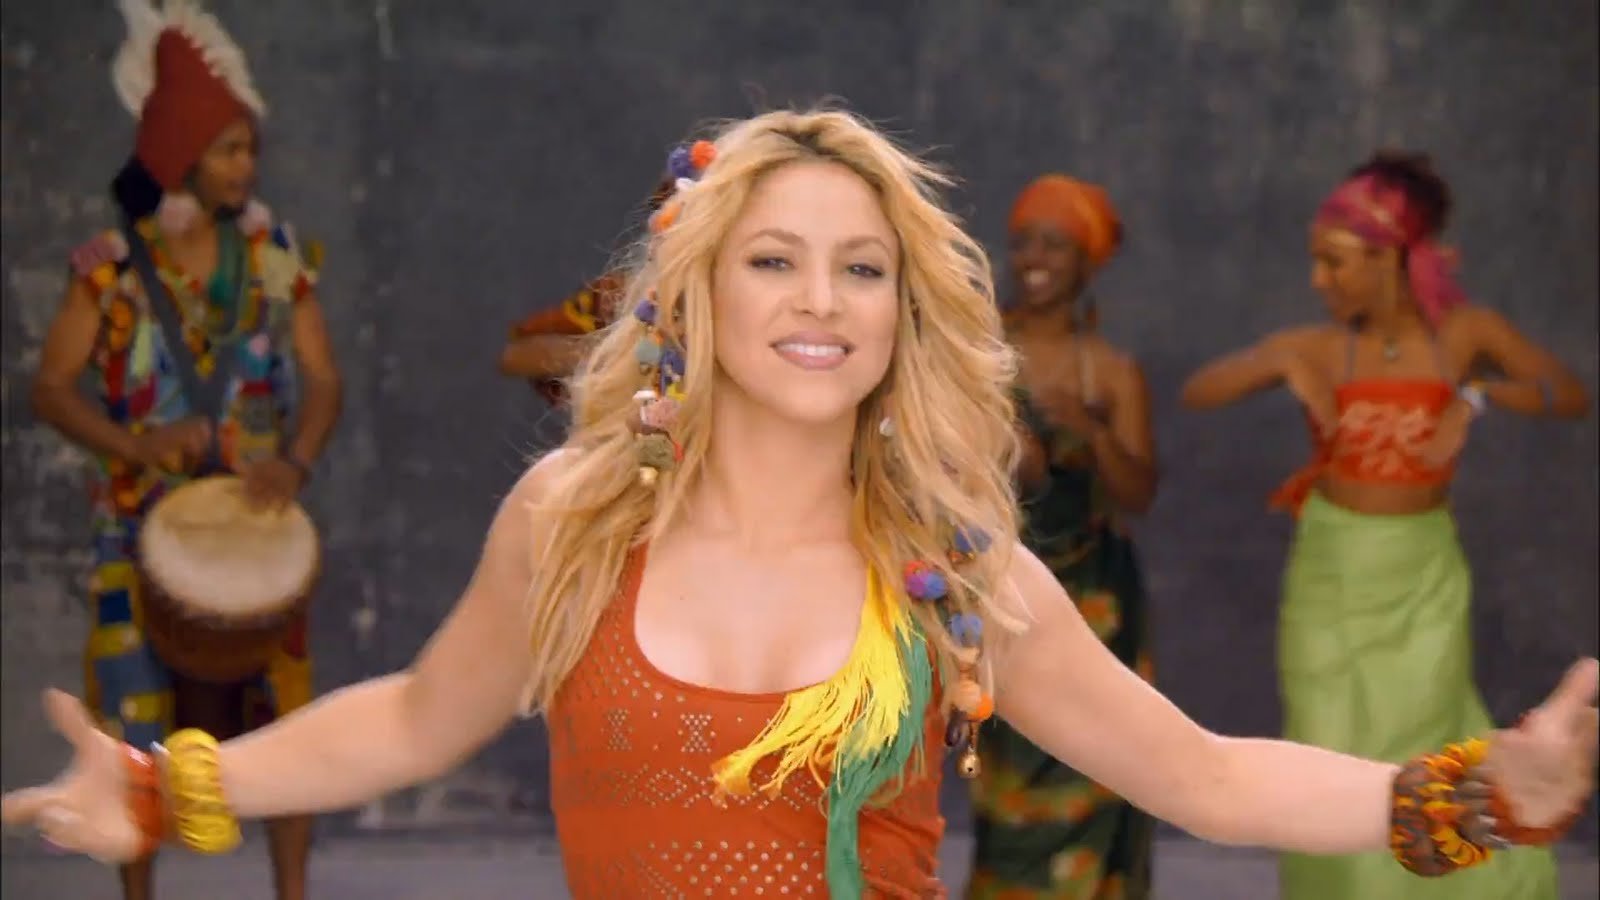 video shakira download: